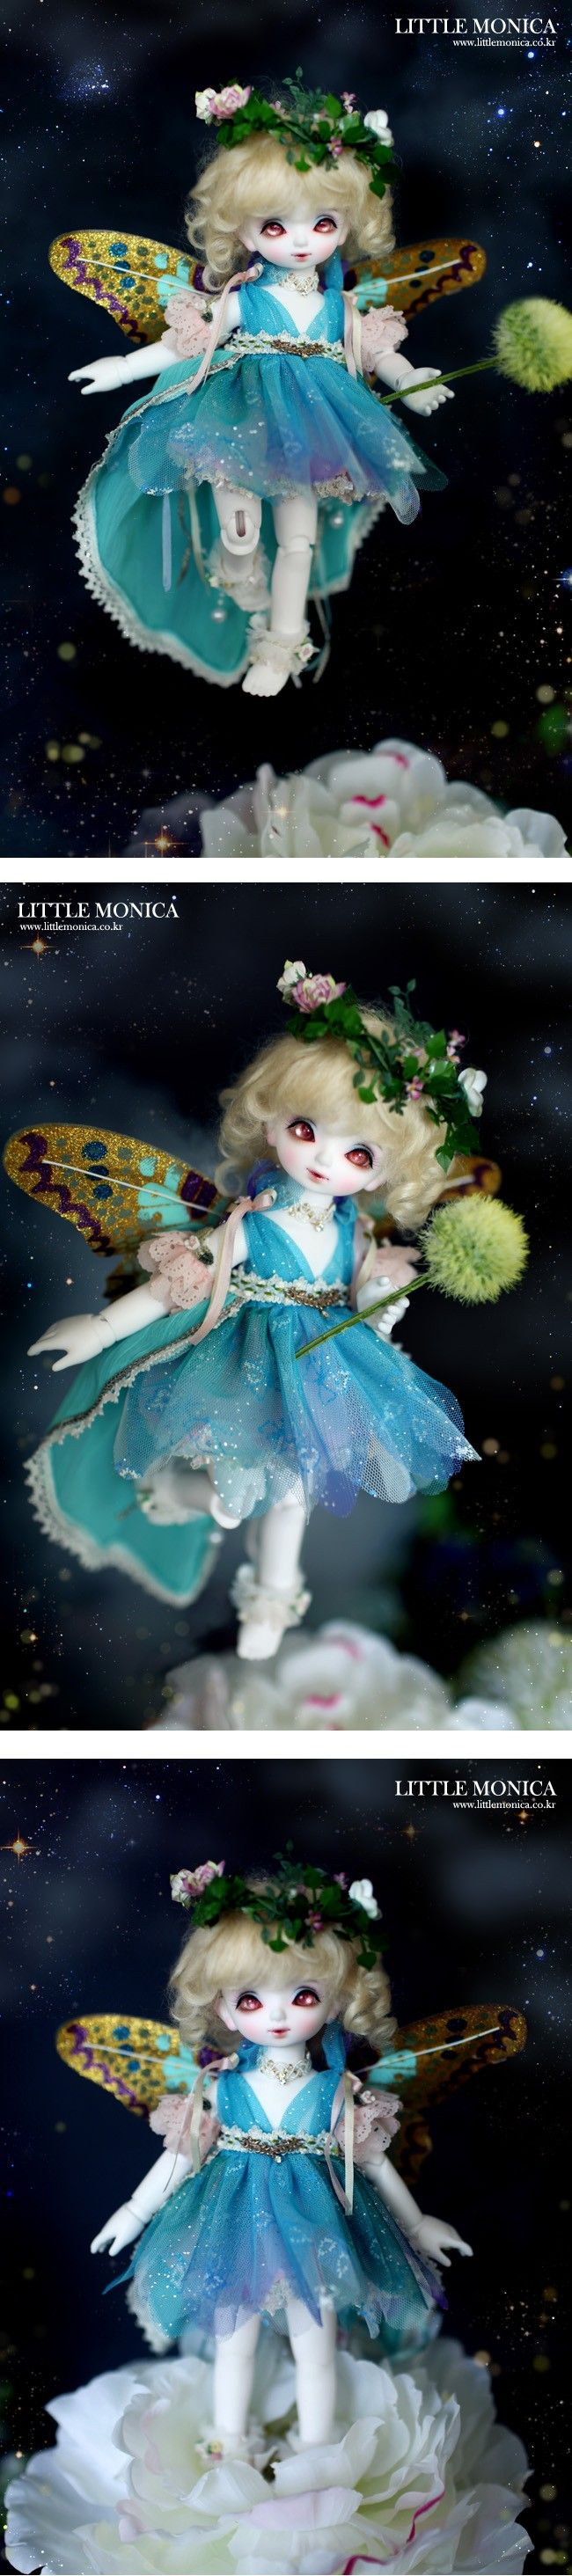 Weeny - Little Monica 26cm doll - BJD Dolls, Accessories - Alice's Collections